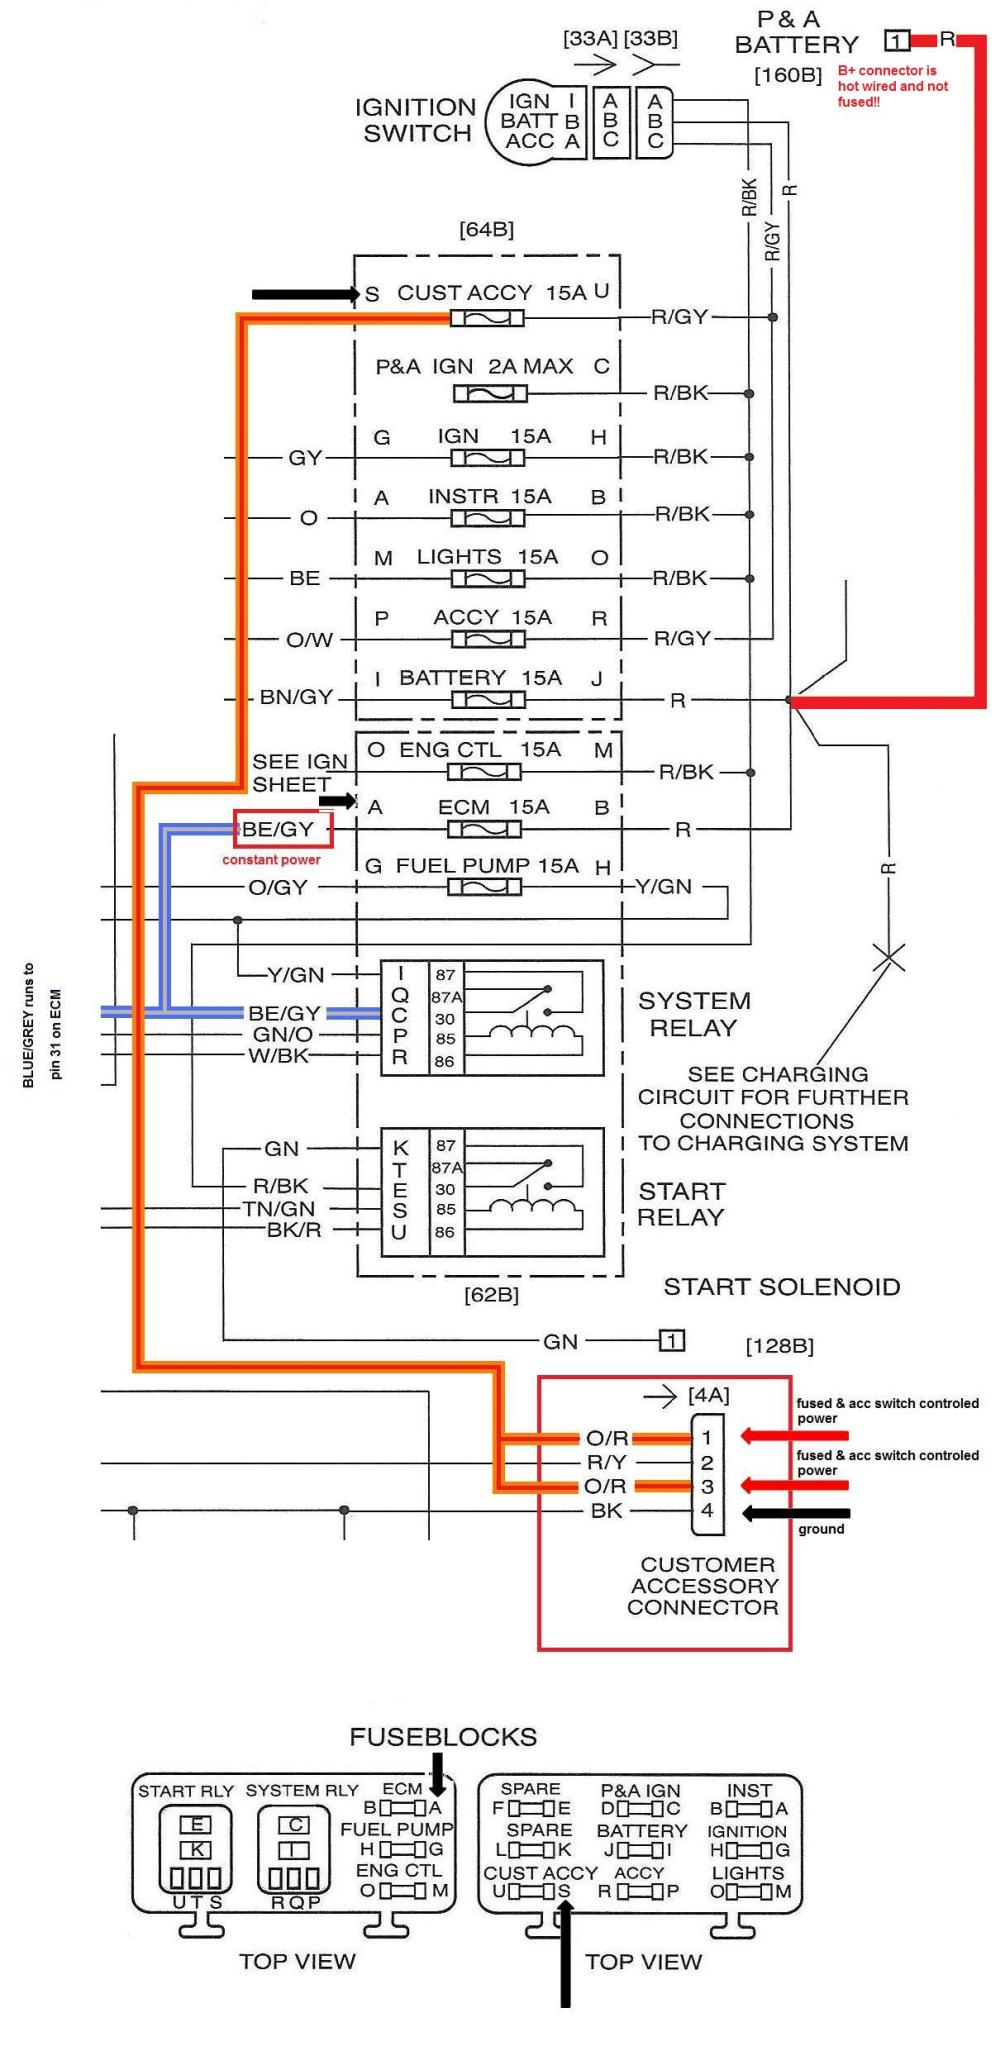 Harley Davidson Radio Wiring Diagram - Wiring Diagrams 24 on